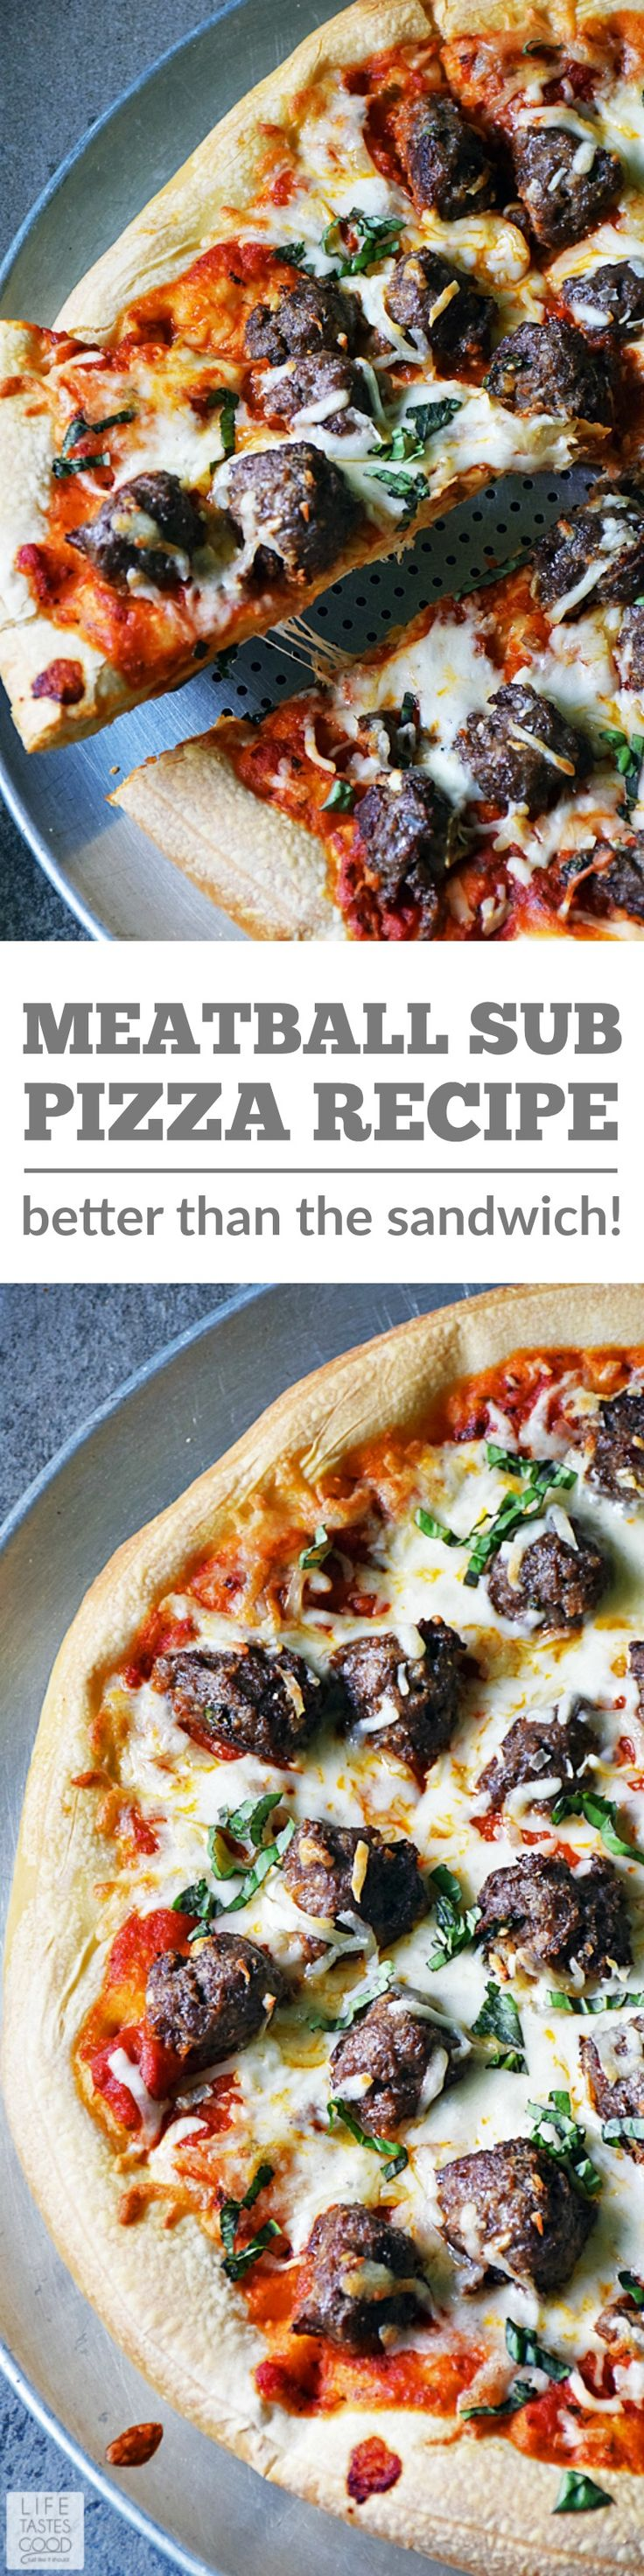 This incredibly tasty Meatball Sub Pizza is even better than the traditional sandwich! It's easy to make using leftover meatballs and red sauce and store bought pizza dough for a quick and easy dinner the whole family will love! #LTGrecipes